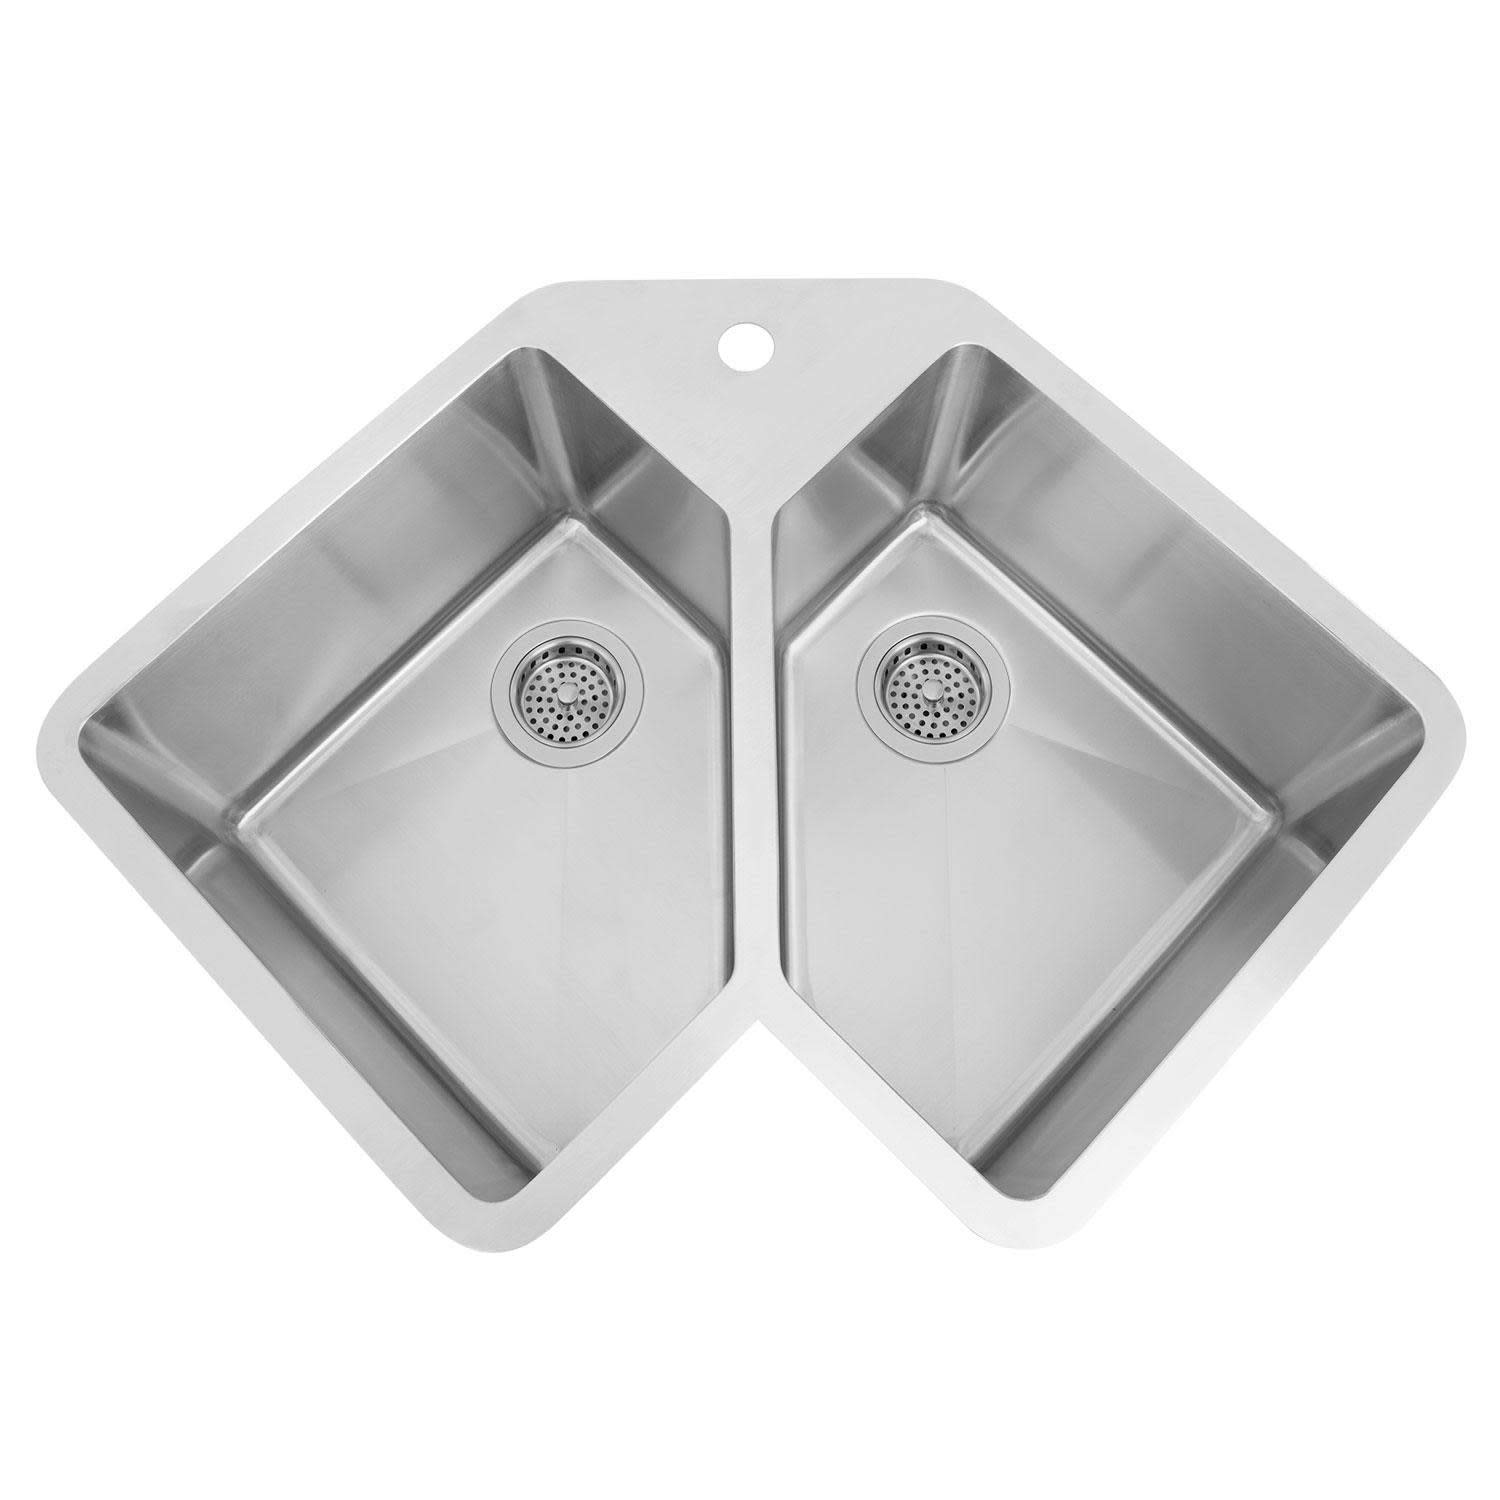 "Signature Hardware 318277 Infinite 32-3/4"" Undermount Double Basin 16 Gauge Stainless Steel Corner Kitchen Sink with Single Faucet Hole"